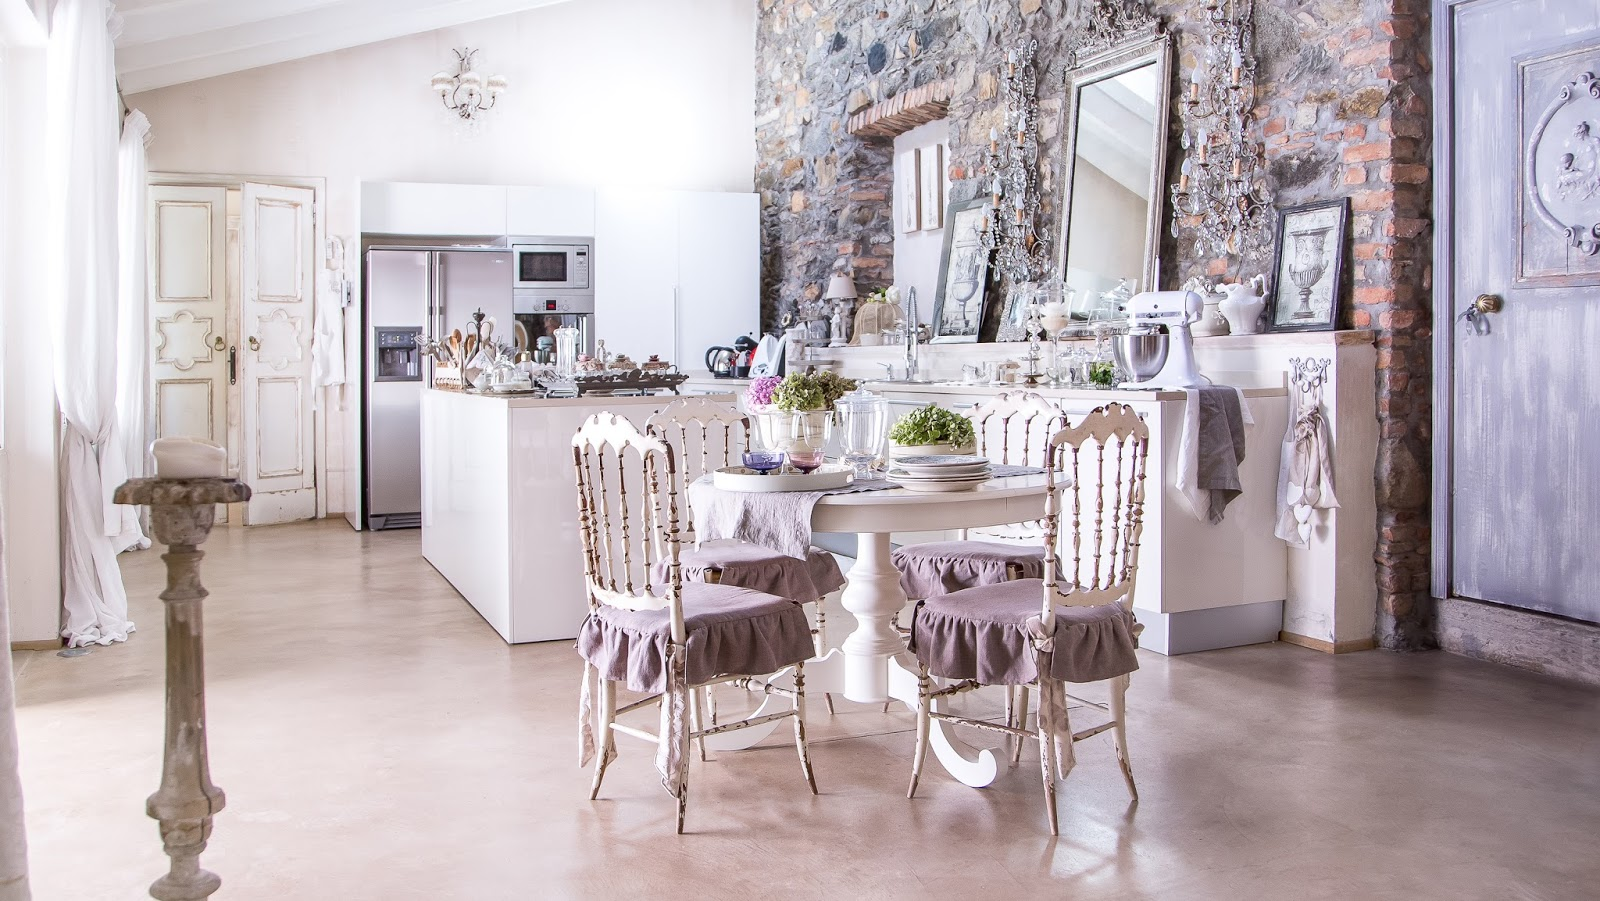 Super Una casa in stile provenzale - Shabby Chic Interiors JG82